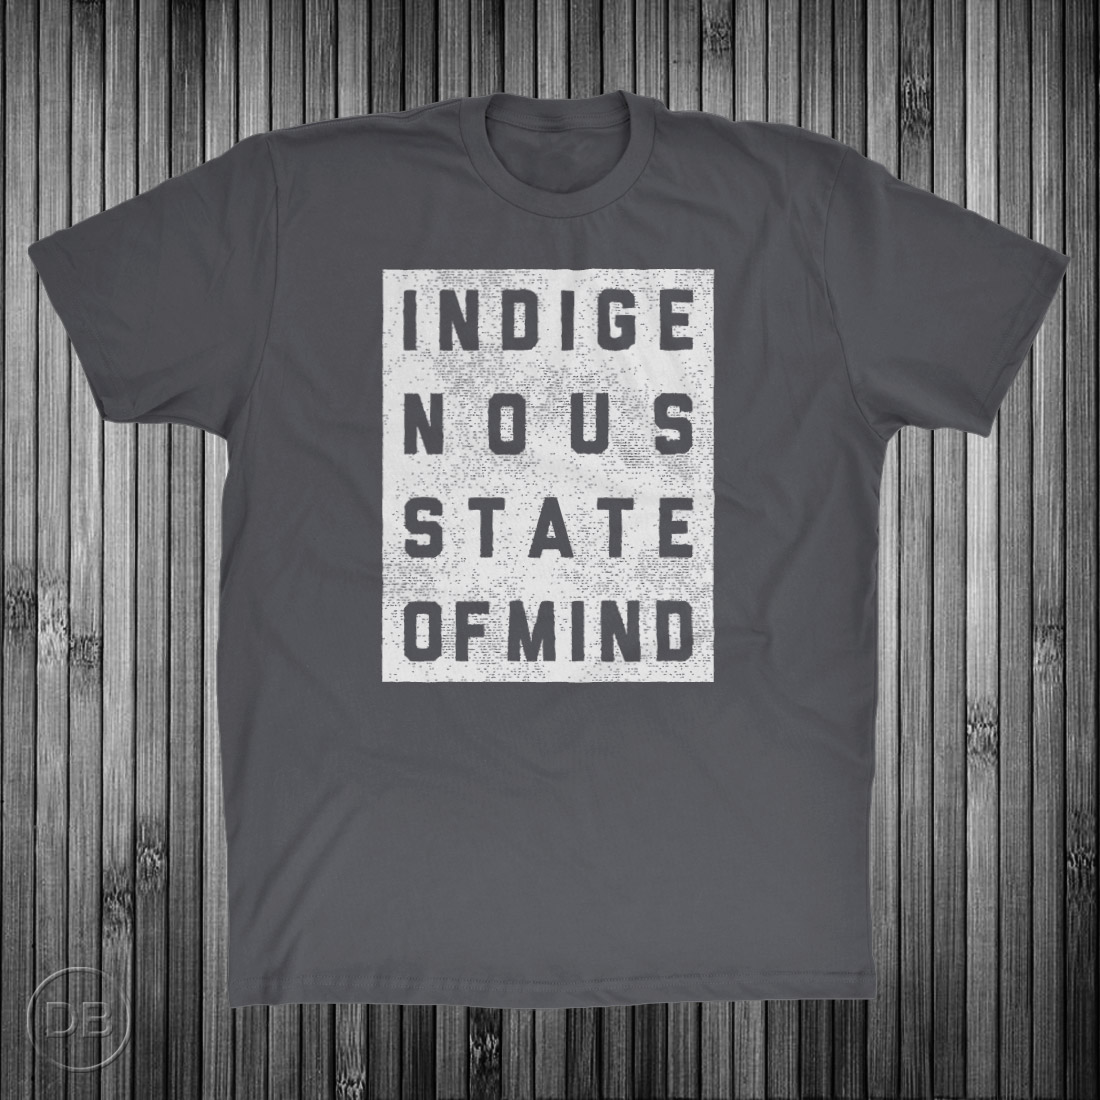 David Bernie Indigenous State of Mind Shirt